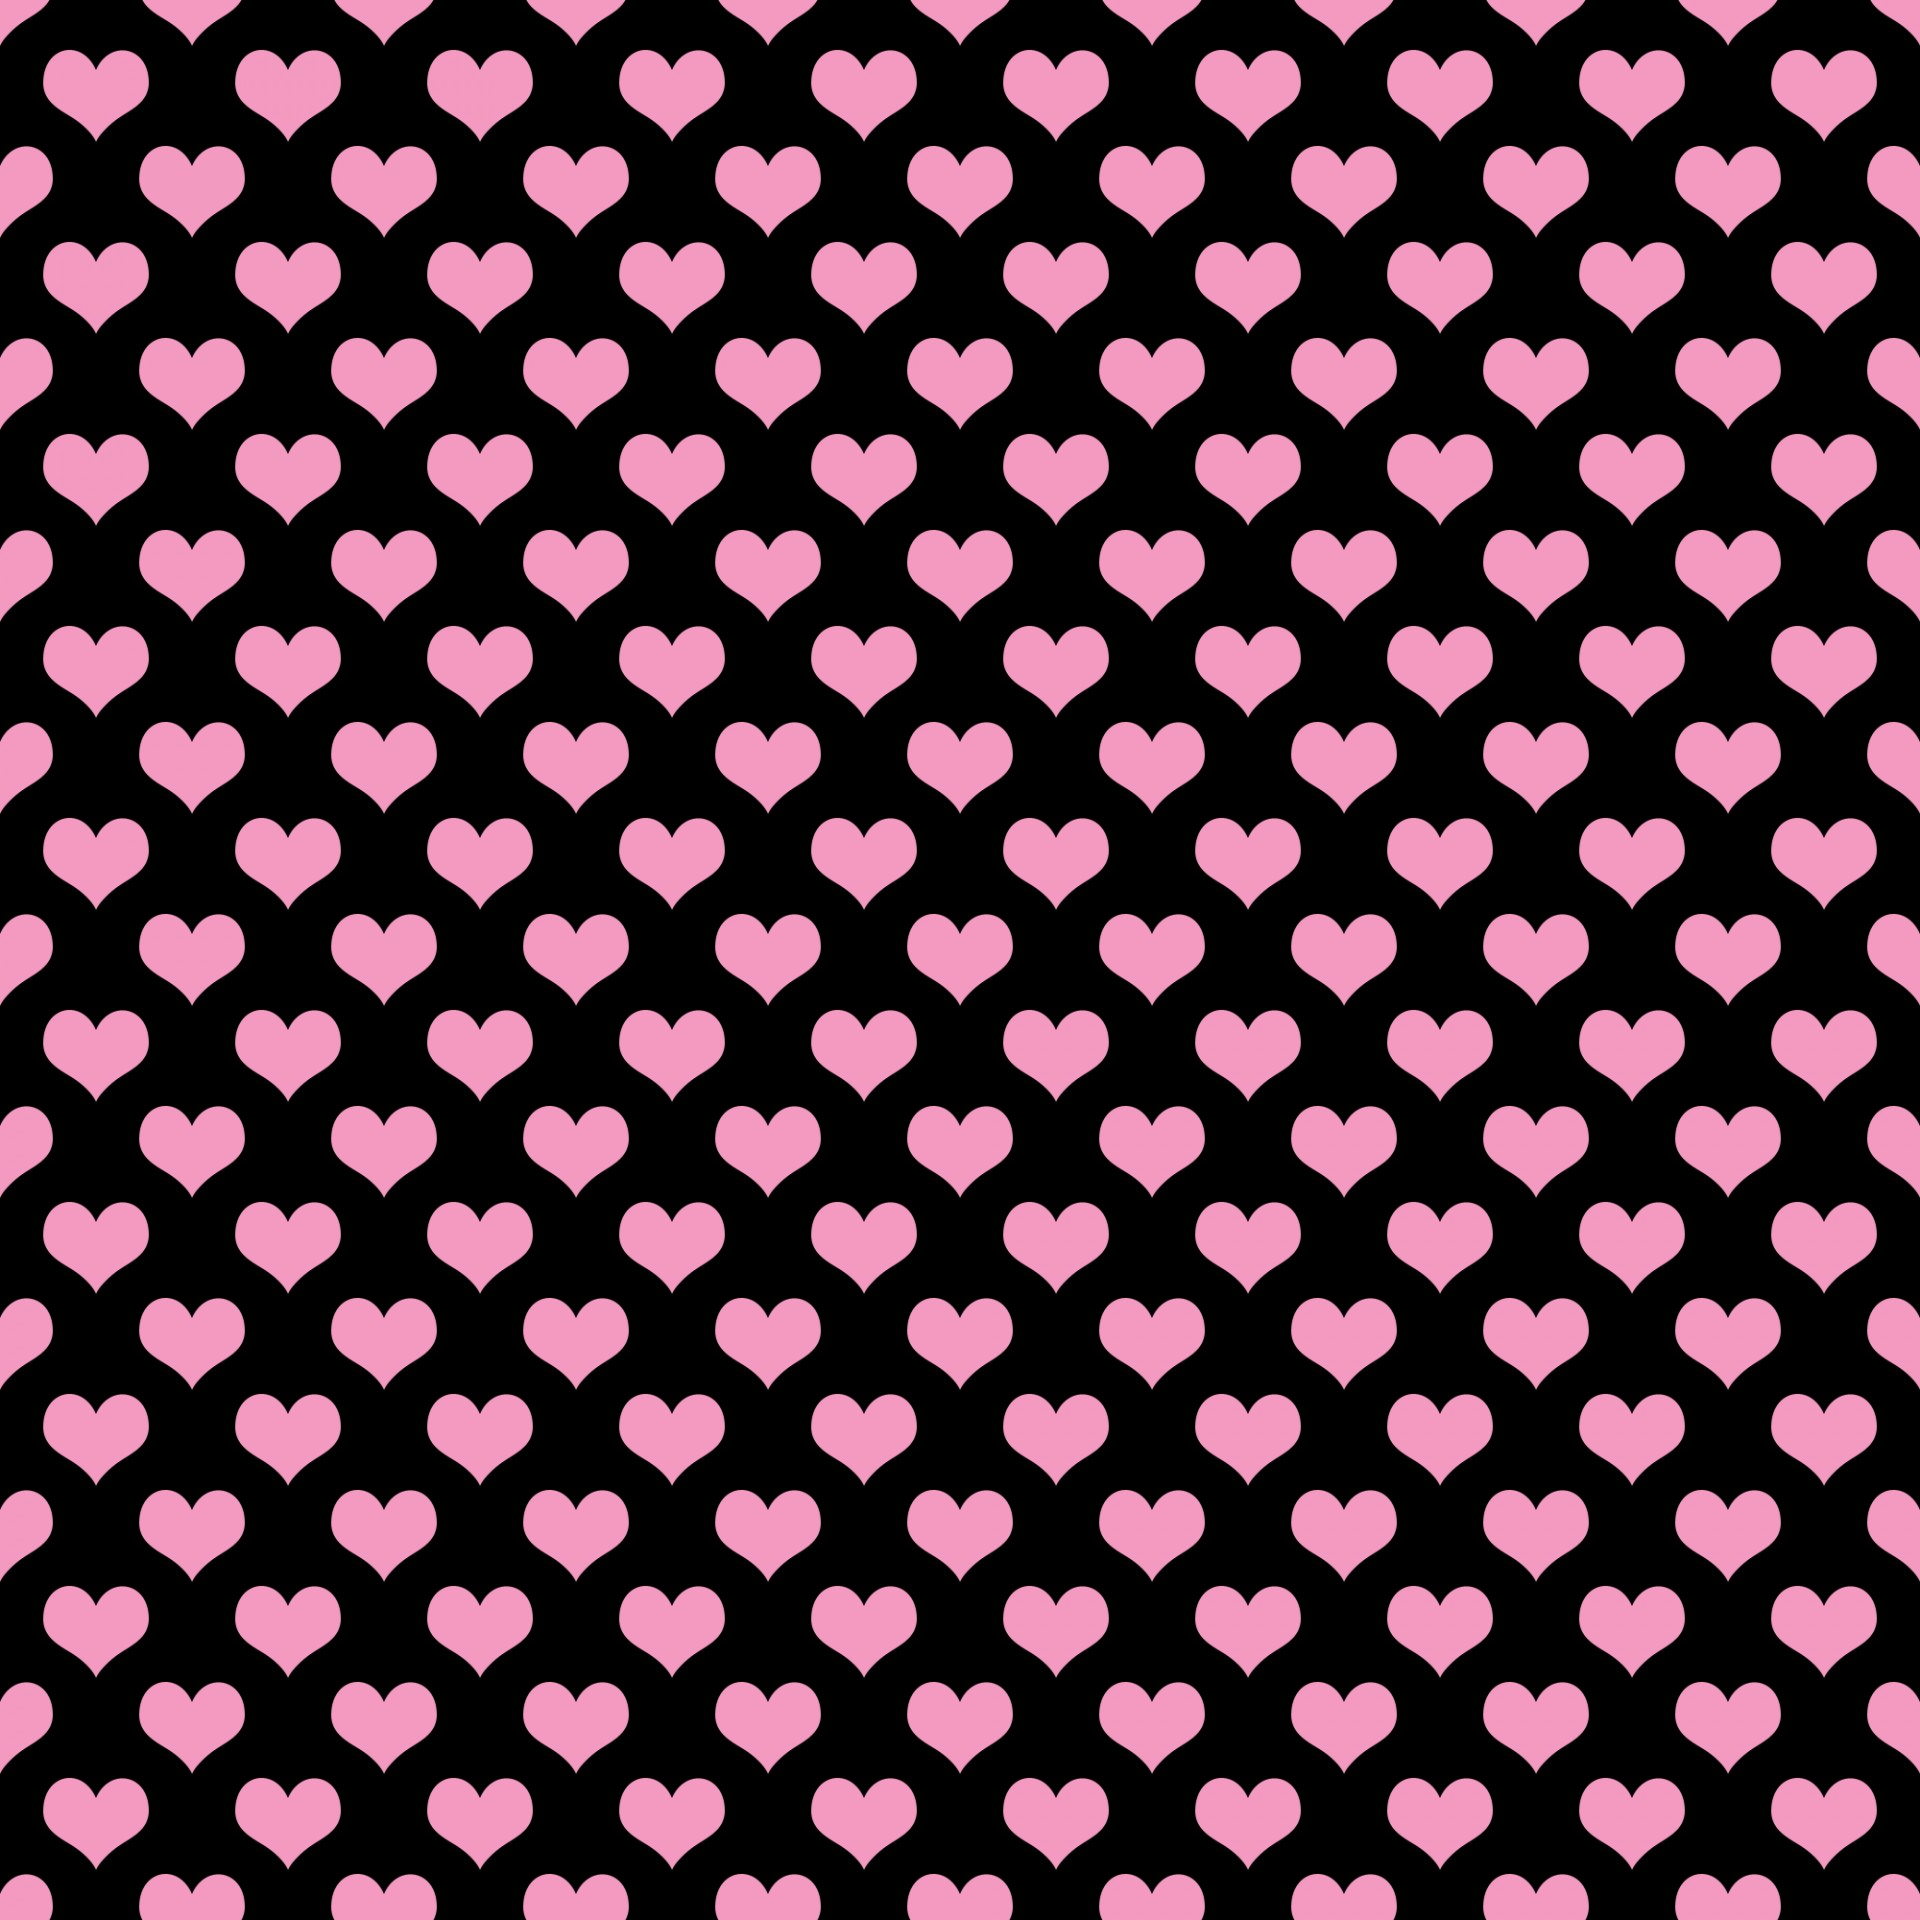 Pictures of pink and black hearts Be Inspired: 3 Month Old Babies Confessions of a